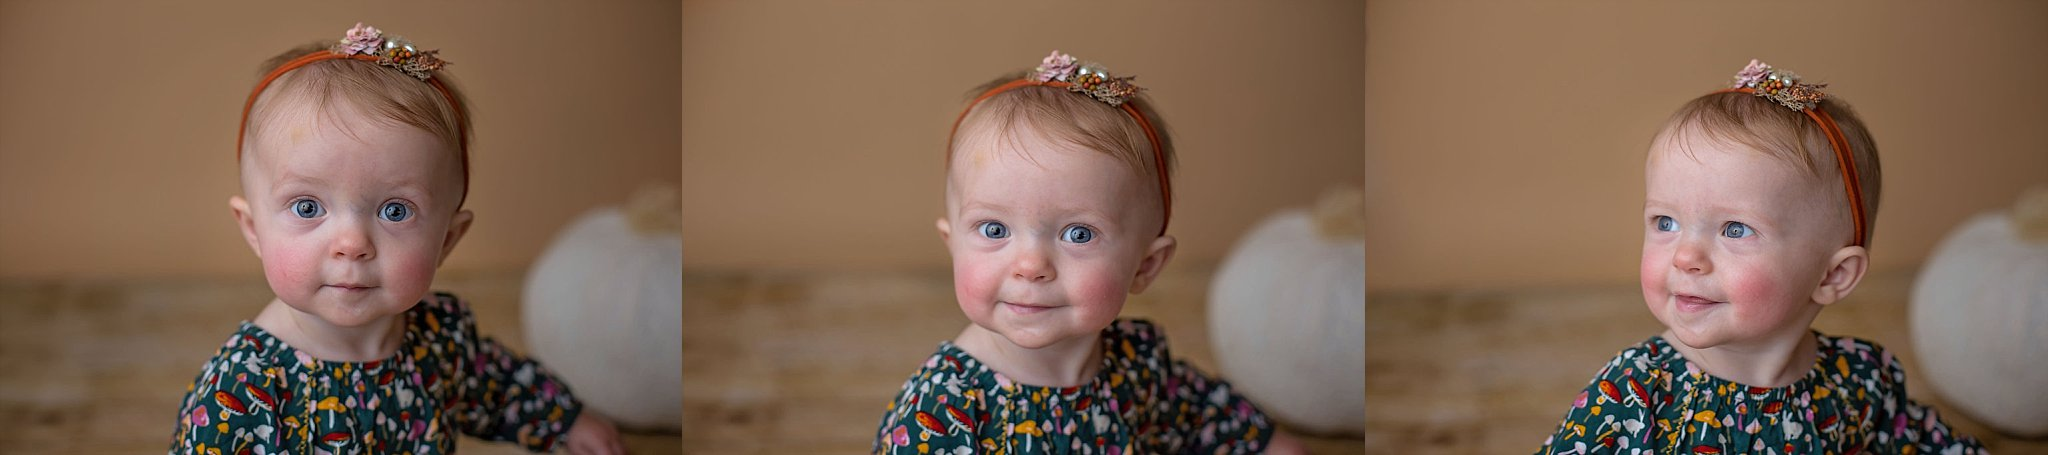 Baby girl smiles during one year birthday studio portrait session.